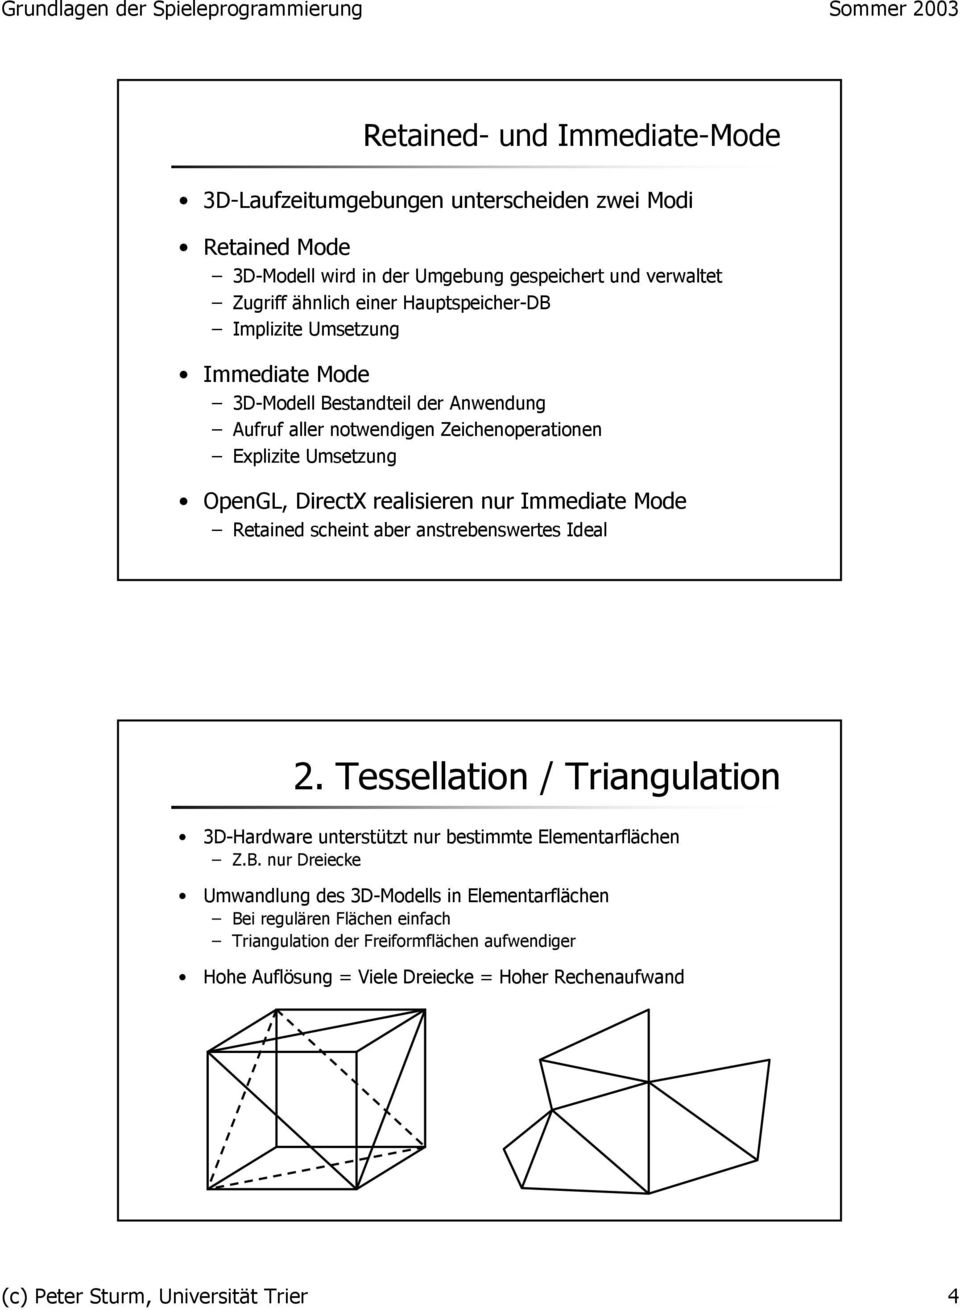 nur Immediate Mode Retained scheint aber anstrebenswertes Ideal 2. Tessellation / Triangulation 3D-Hardware unterstützt nur bestimmte Elementarflächen Z.B.